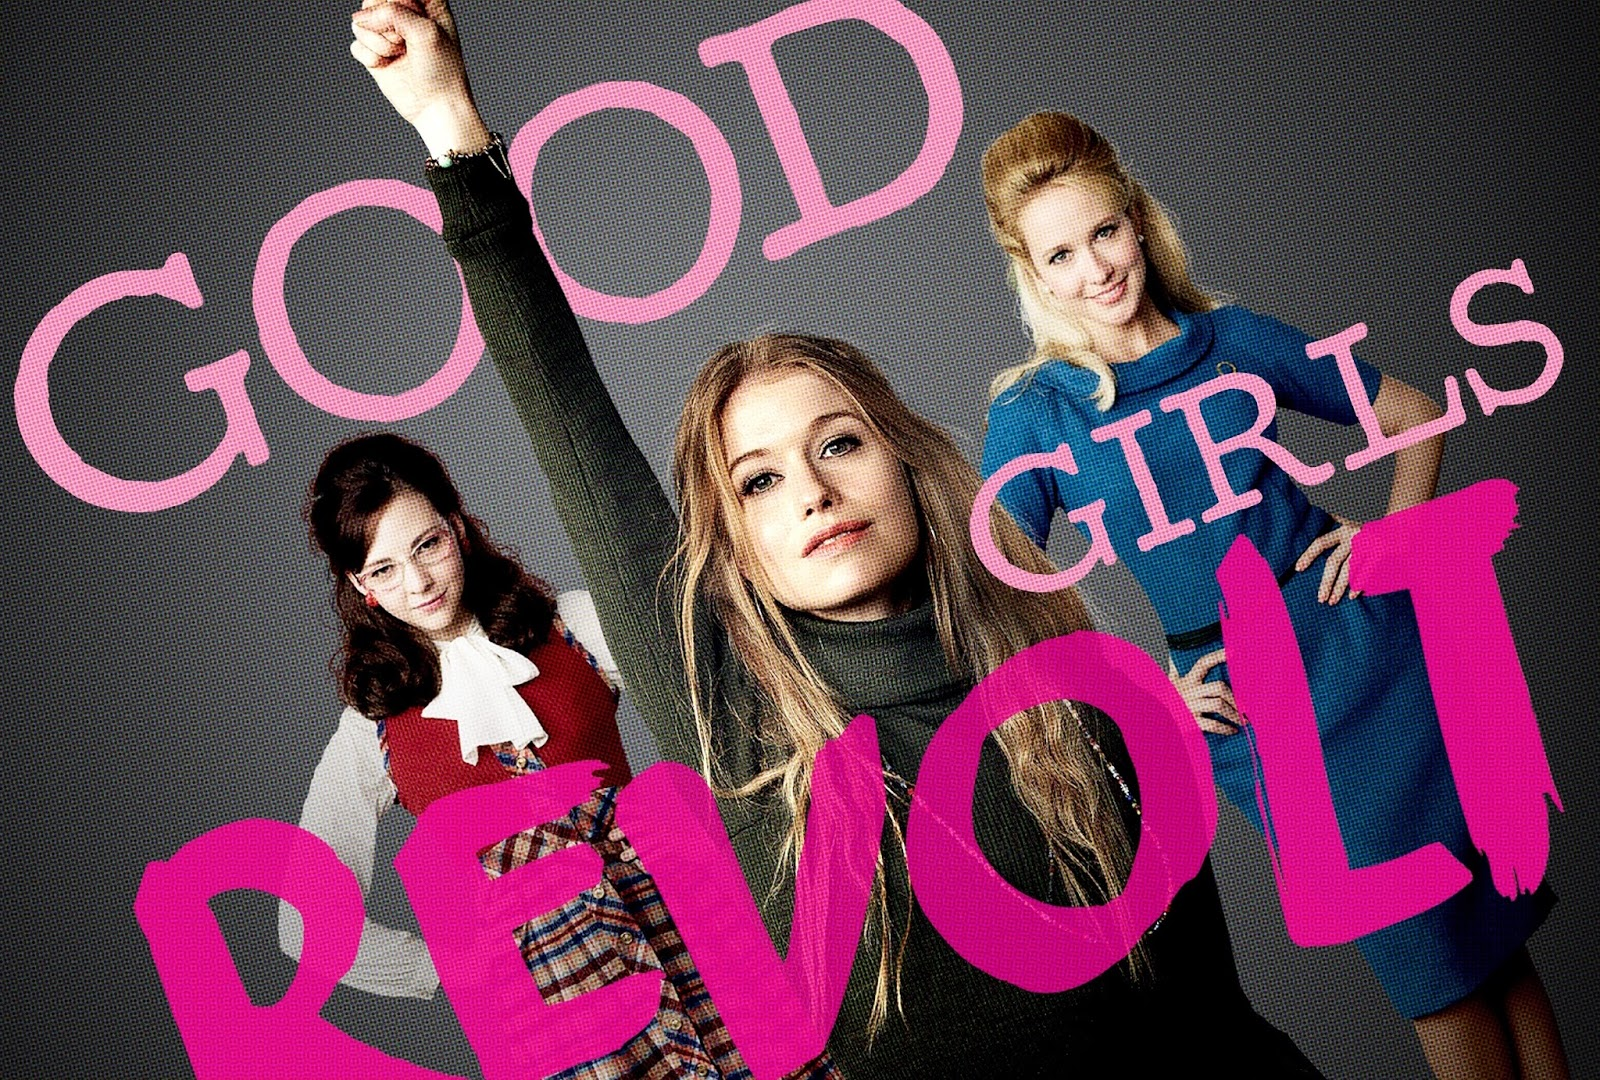 Good_Girls_Revolt_review_piloto_poster_promo